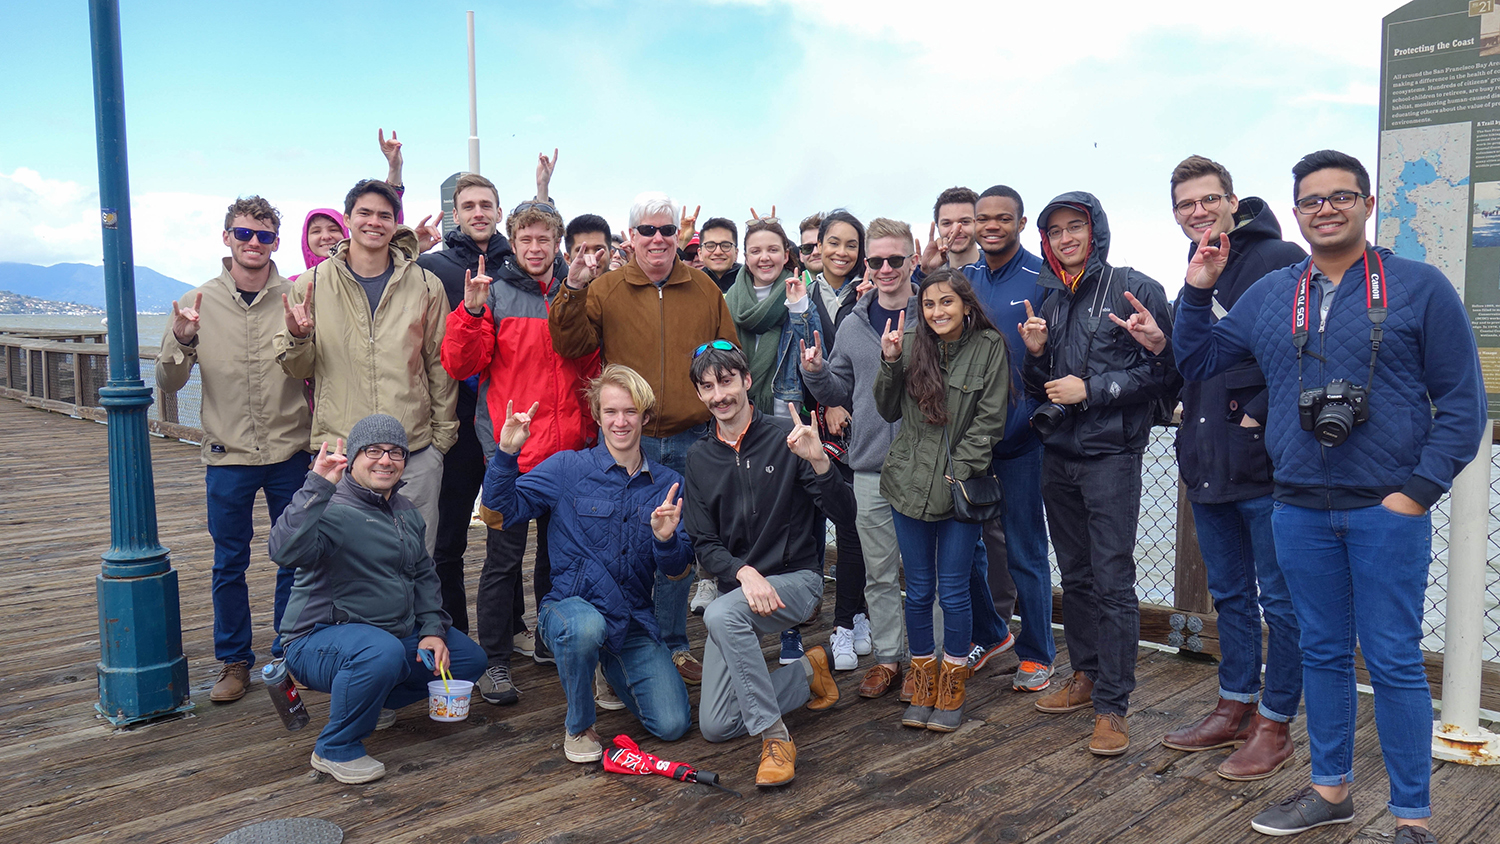 Group of students and faculty on a dock in California.